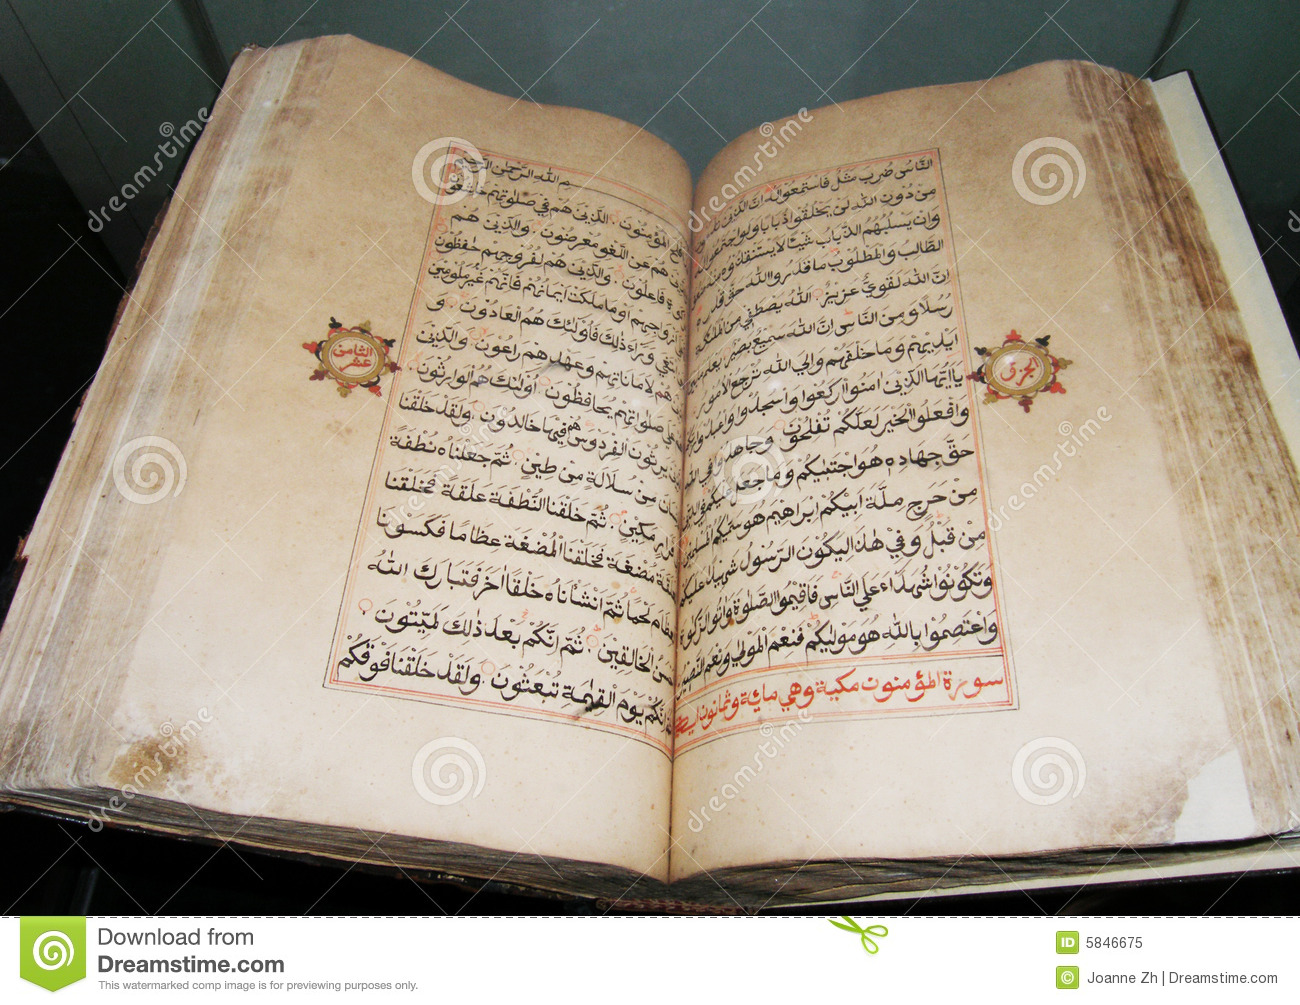 Antique Holy Book Of Islam Royalty Free Stock Photo - Image: 5846675